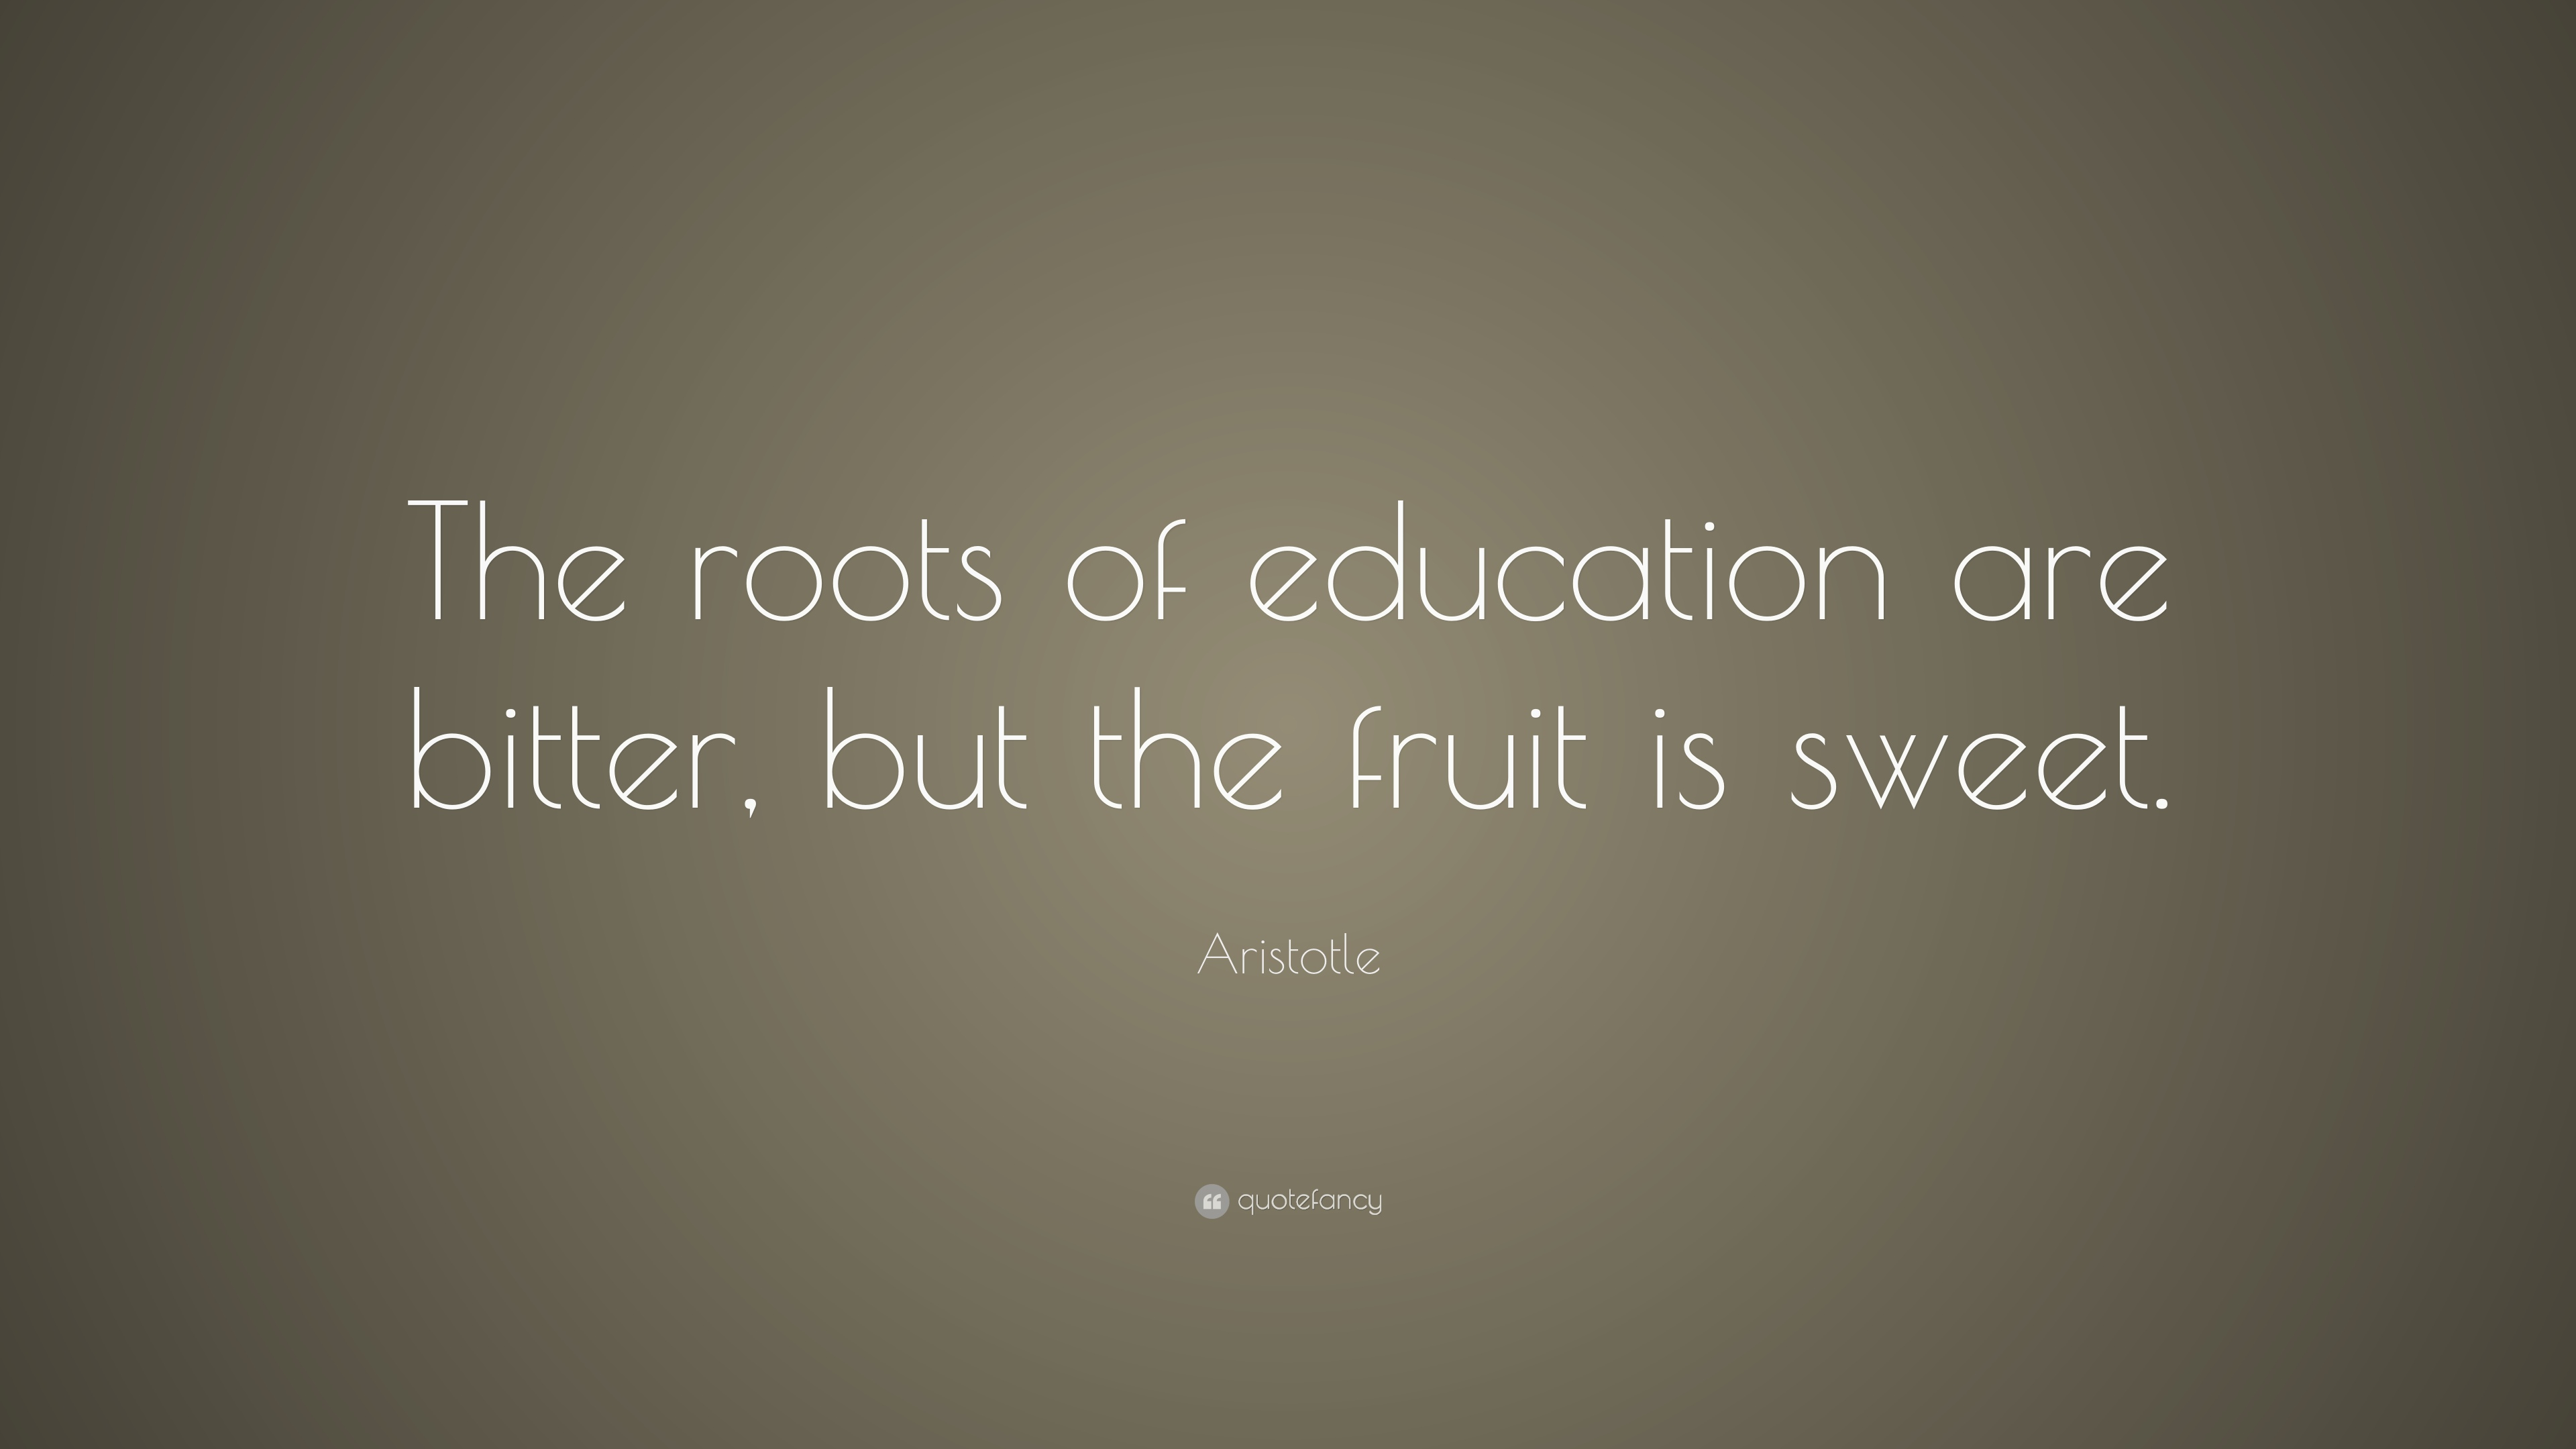 Fruit Quotes Wallpaper Aristotle Quote The Roots Of Education Are Bitter But